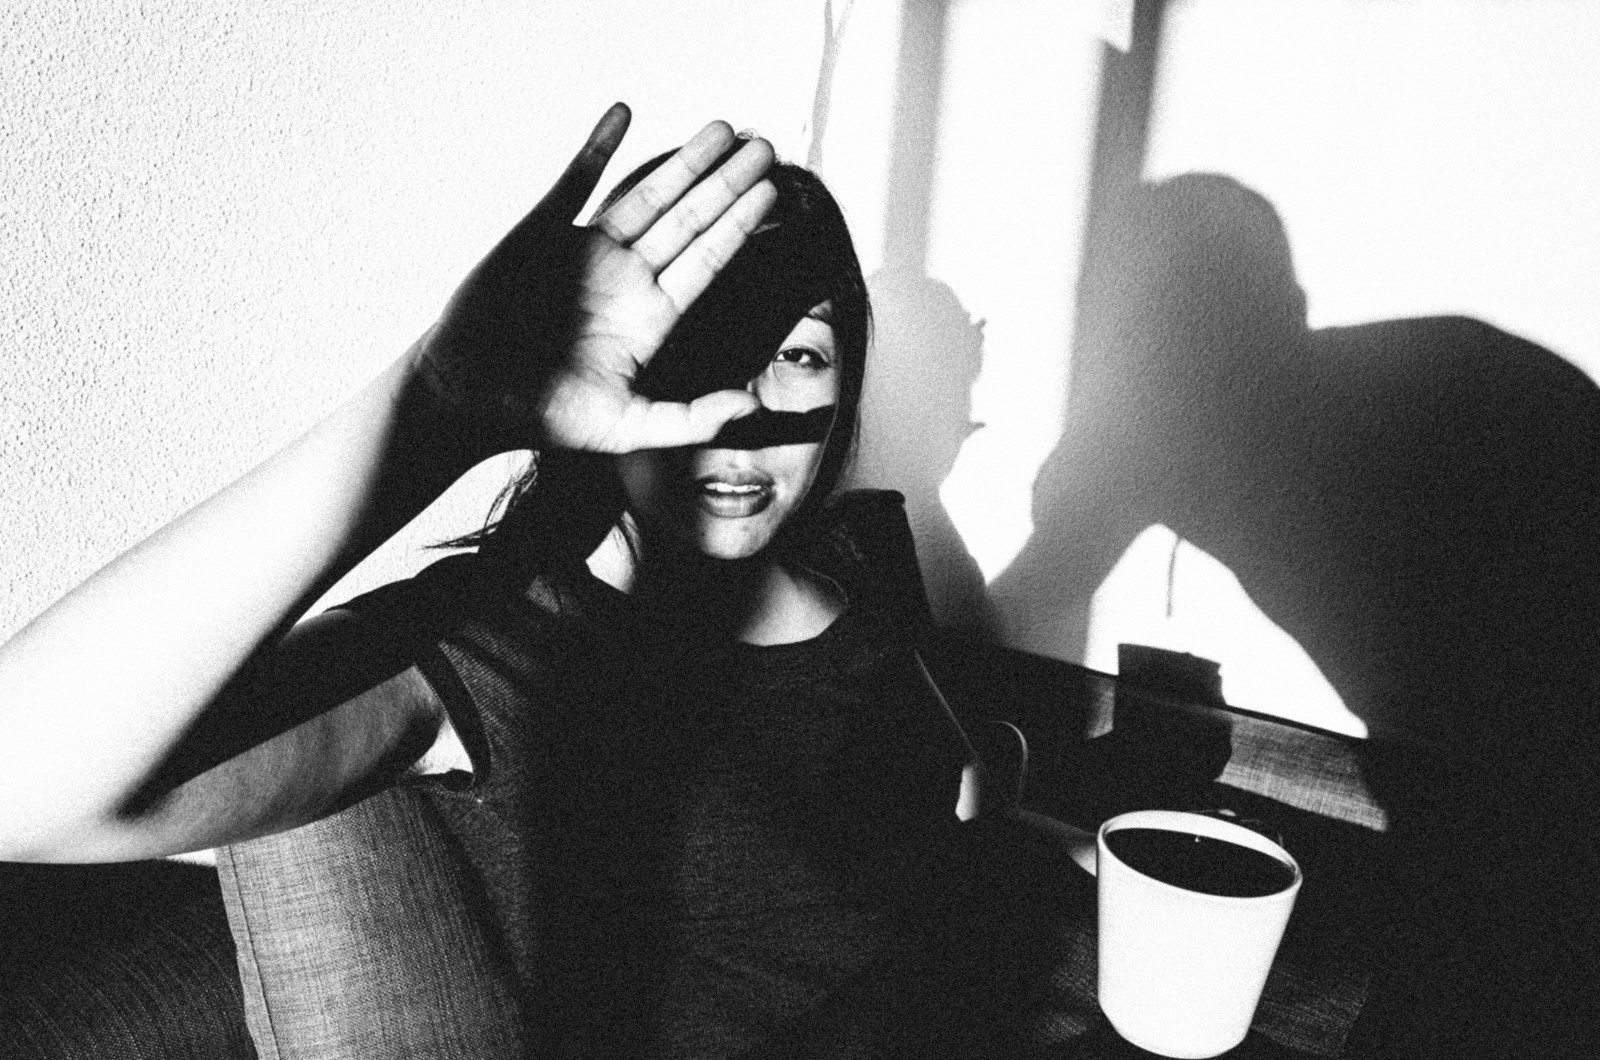 Berkeley, 2015 #cindyproject. Shot in our living room, while enjoying a nice coffee.